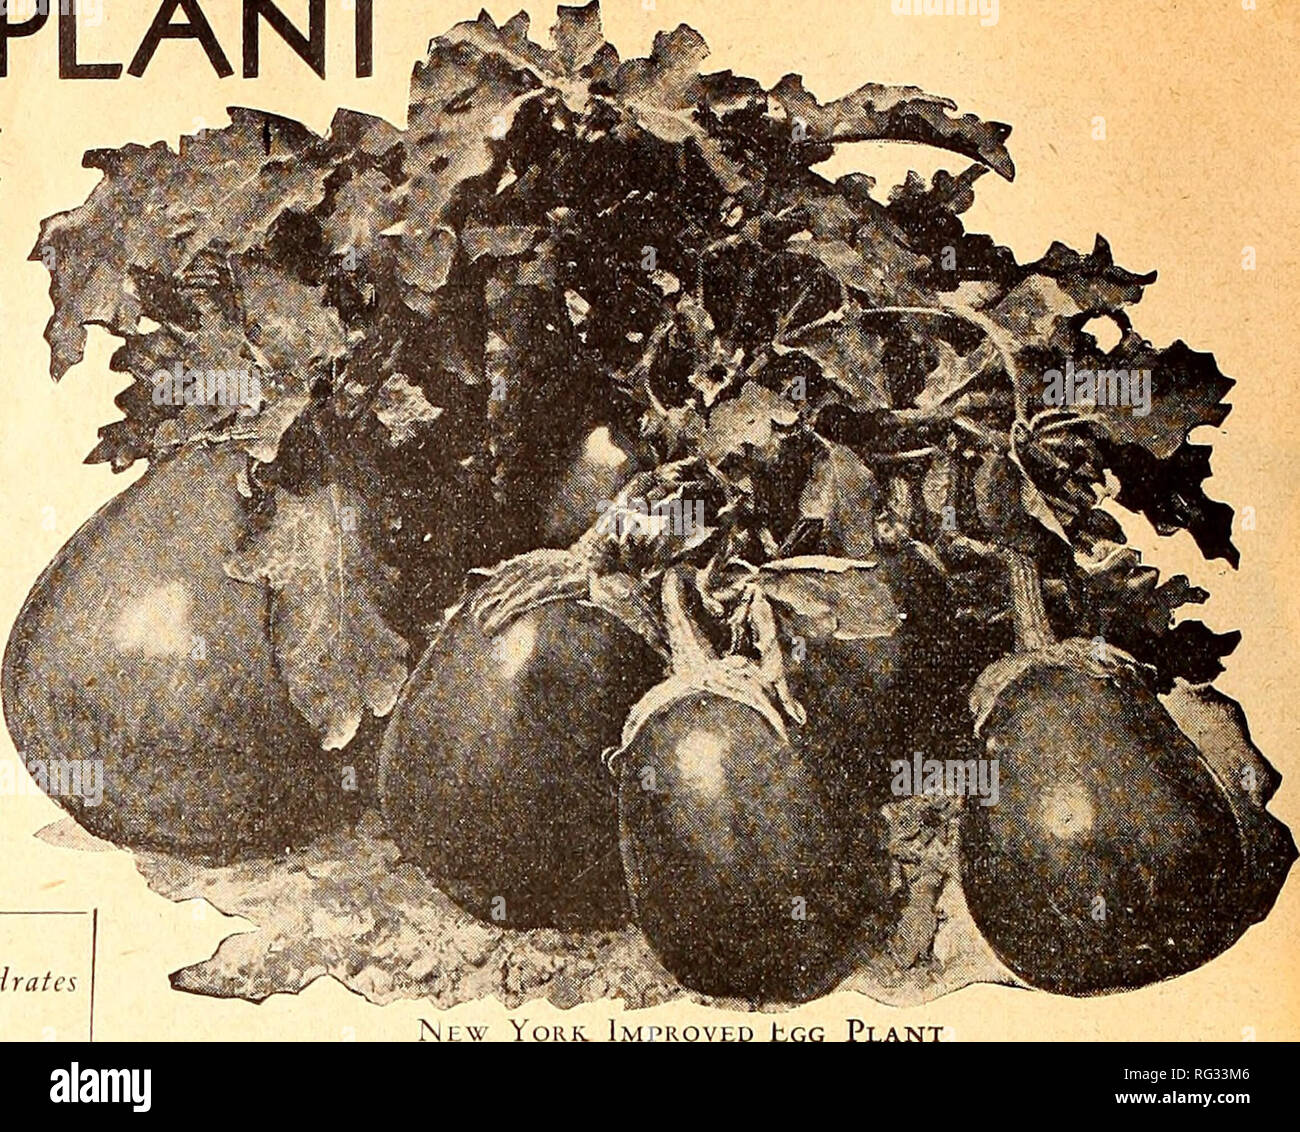 . California gardening. Nurseries (Horticulture) Catalogs; Flowers Seeds Catalogs; Plants, Ornamental Catalogs; Vegetables Seeds Catalogs; Fruit trees Catalogs; Trees Catalogs; Grasses Seeds Catalogs. GERMAIN'S EGG PLANT Aubergine, Fr. Bereiijena, Sp. Petonciano, Ital. Eierfrucht, Ger. Note—Prices listed are postpaid CULTURE The plants should be started under glass if ^ wanted early. If later results are desired, seed should be planted in cold frames or , in boxes where special care can be given. Egg plant seed is very delicate and will not grow unless special care is given it. It is easily af Stock Photo